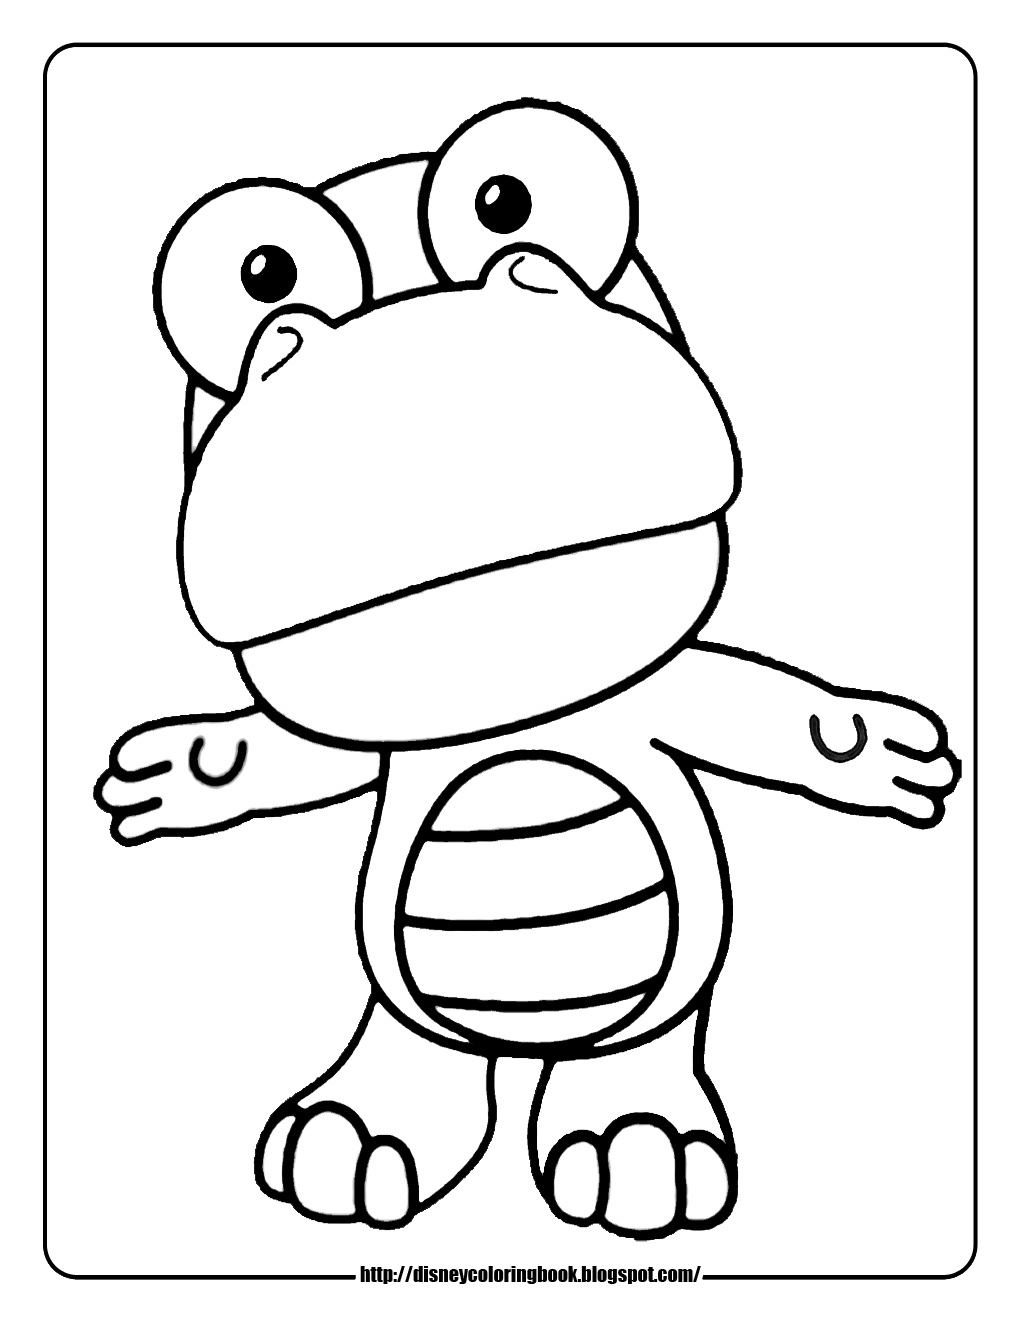 Pororo The Little Penguin 2 Free Disney Coloring Sheets